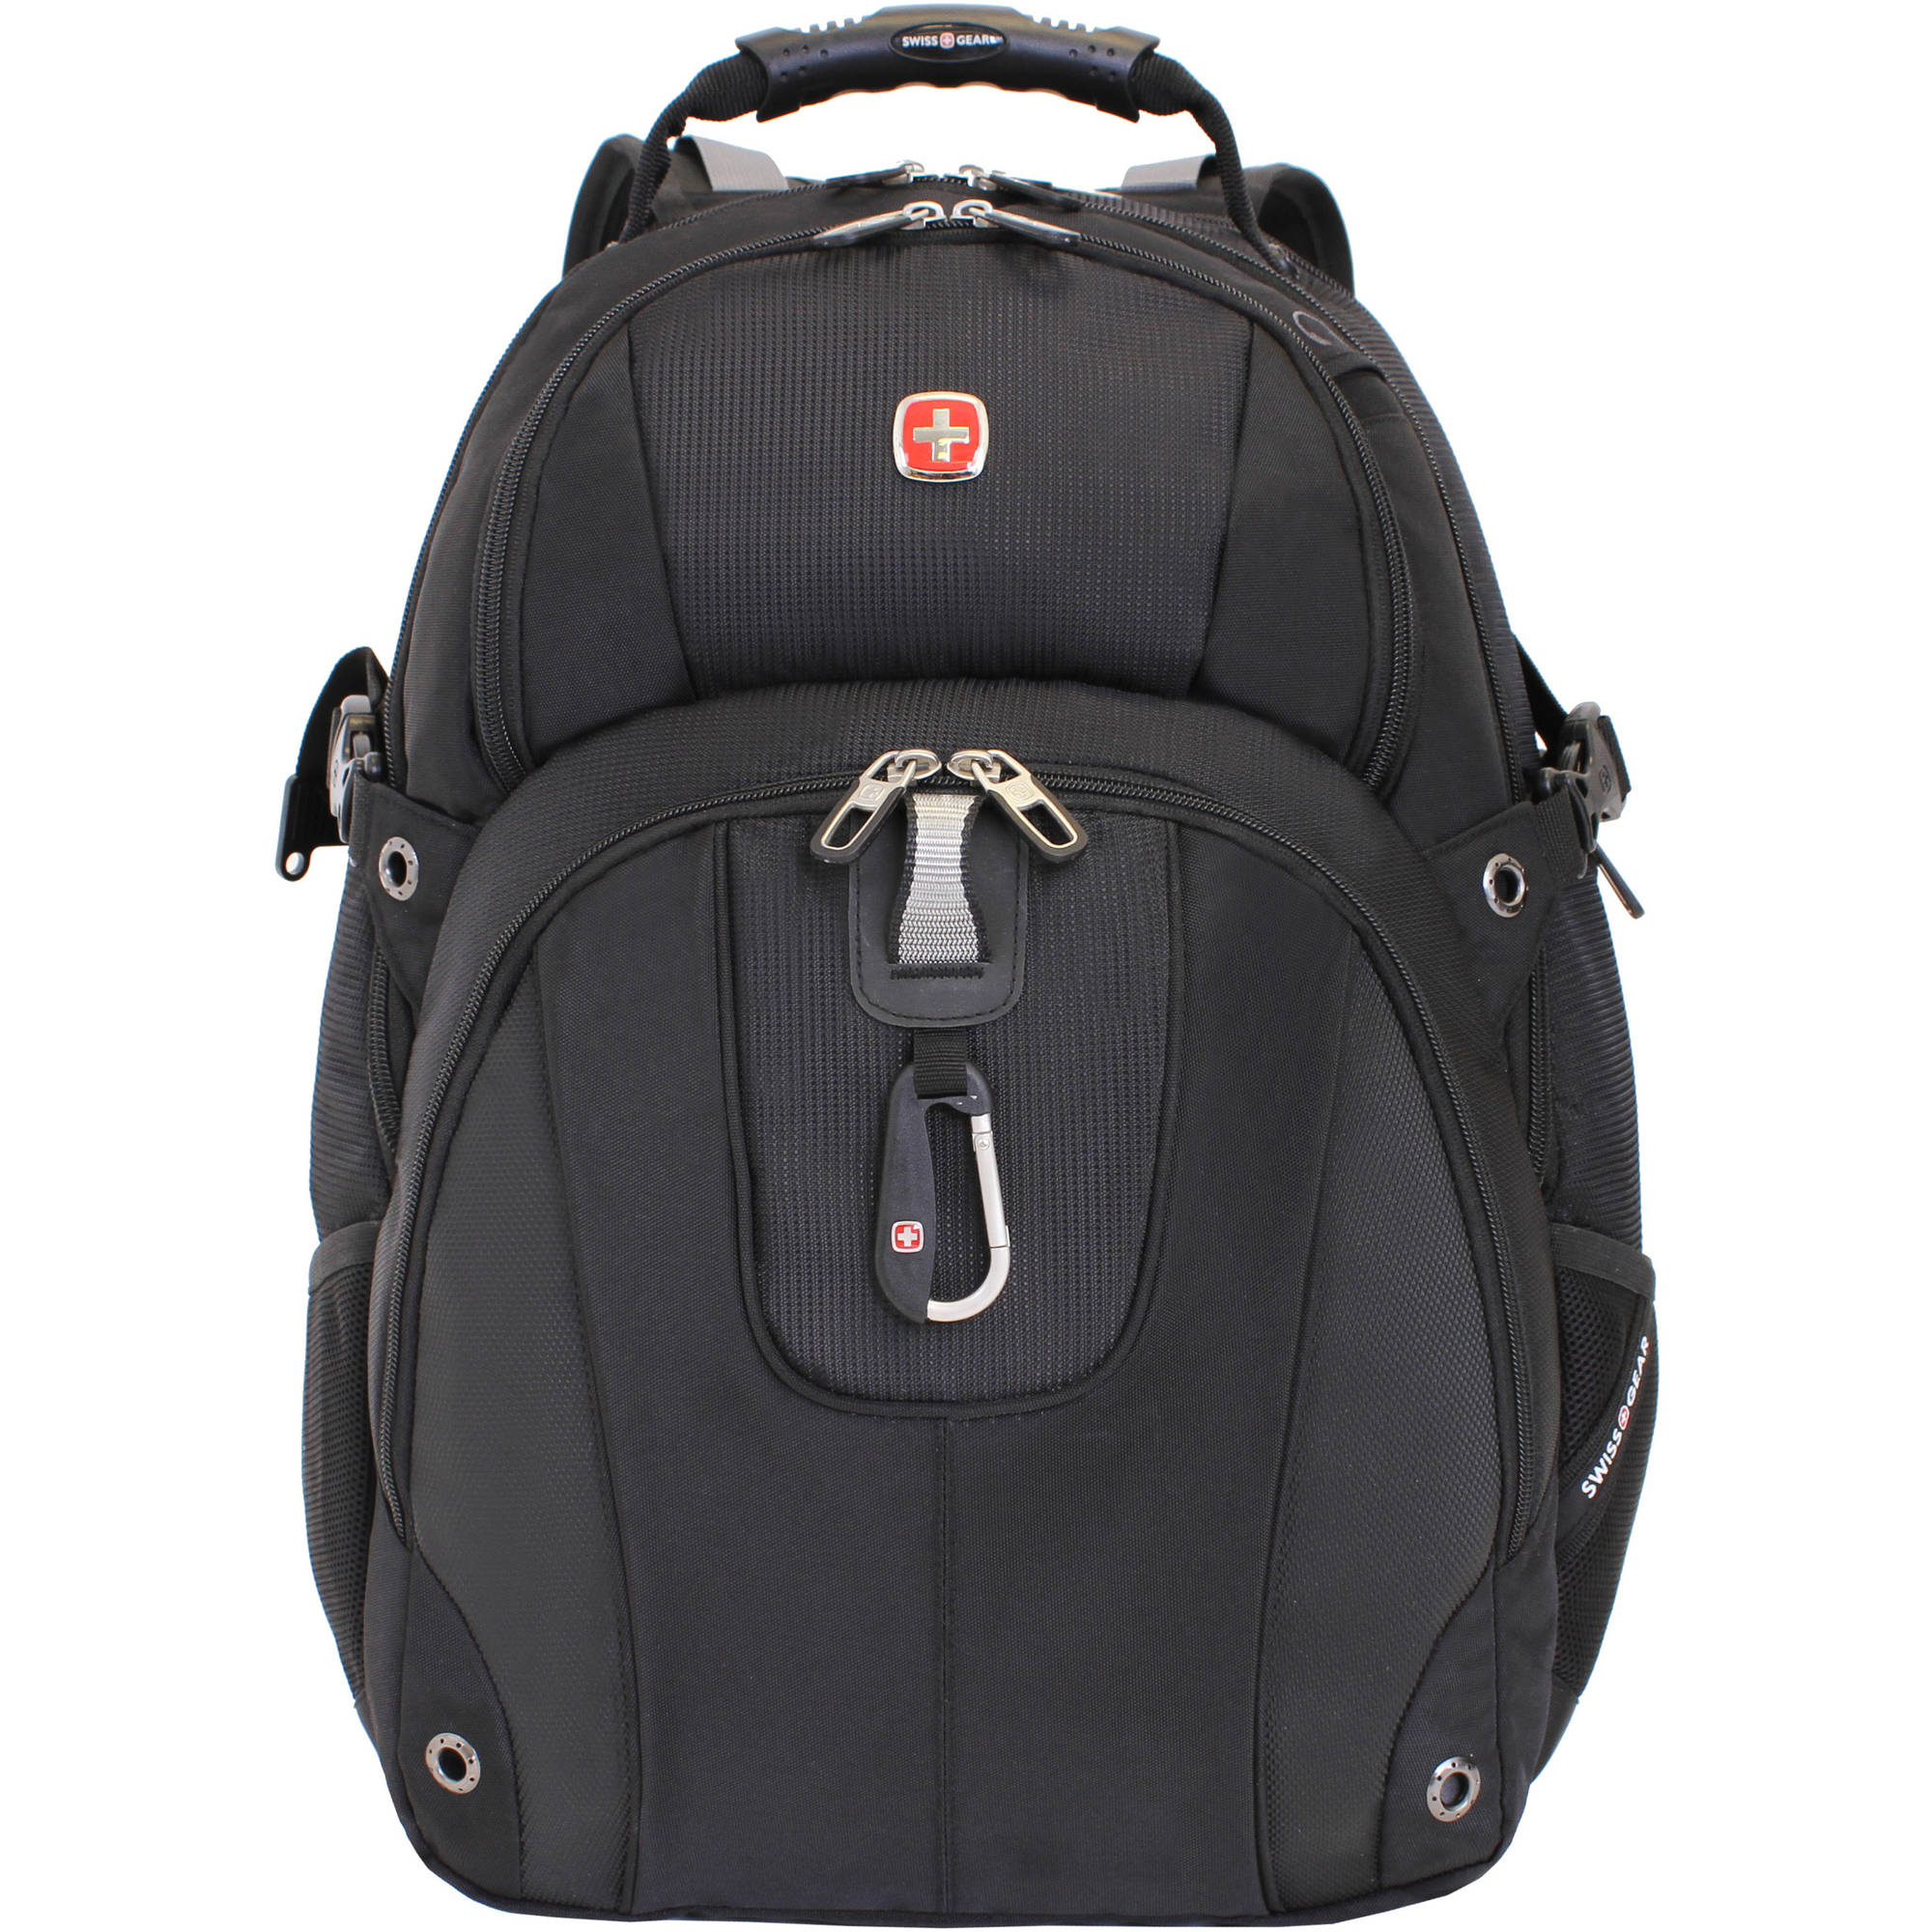 Swiss Gear SA3239 Laptop Backpack